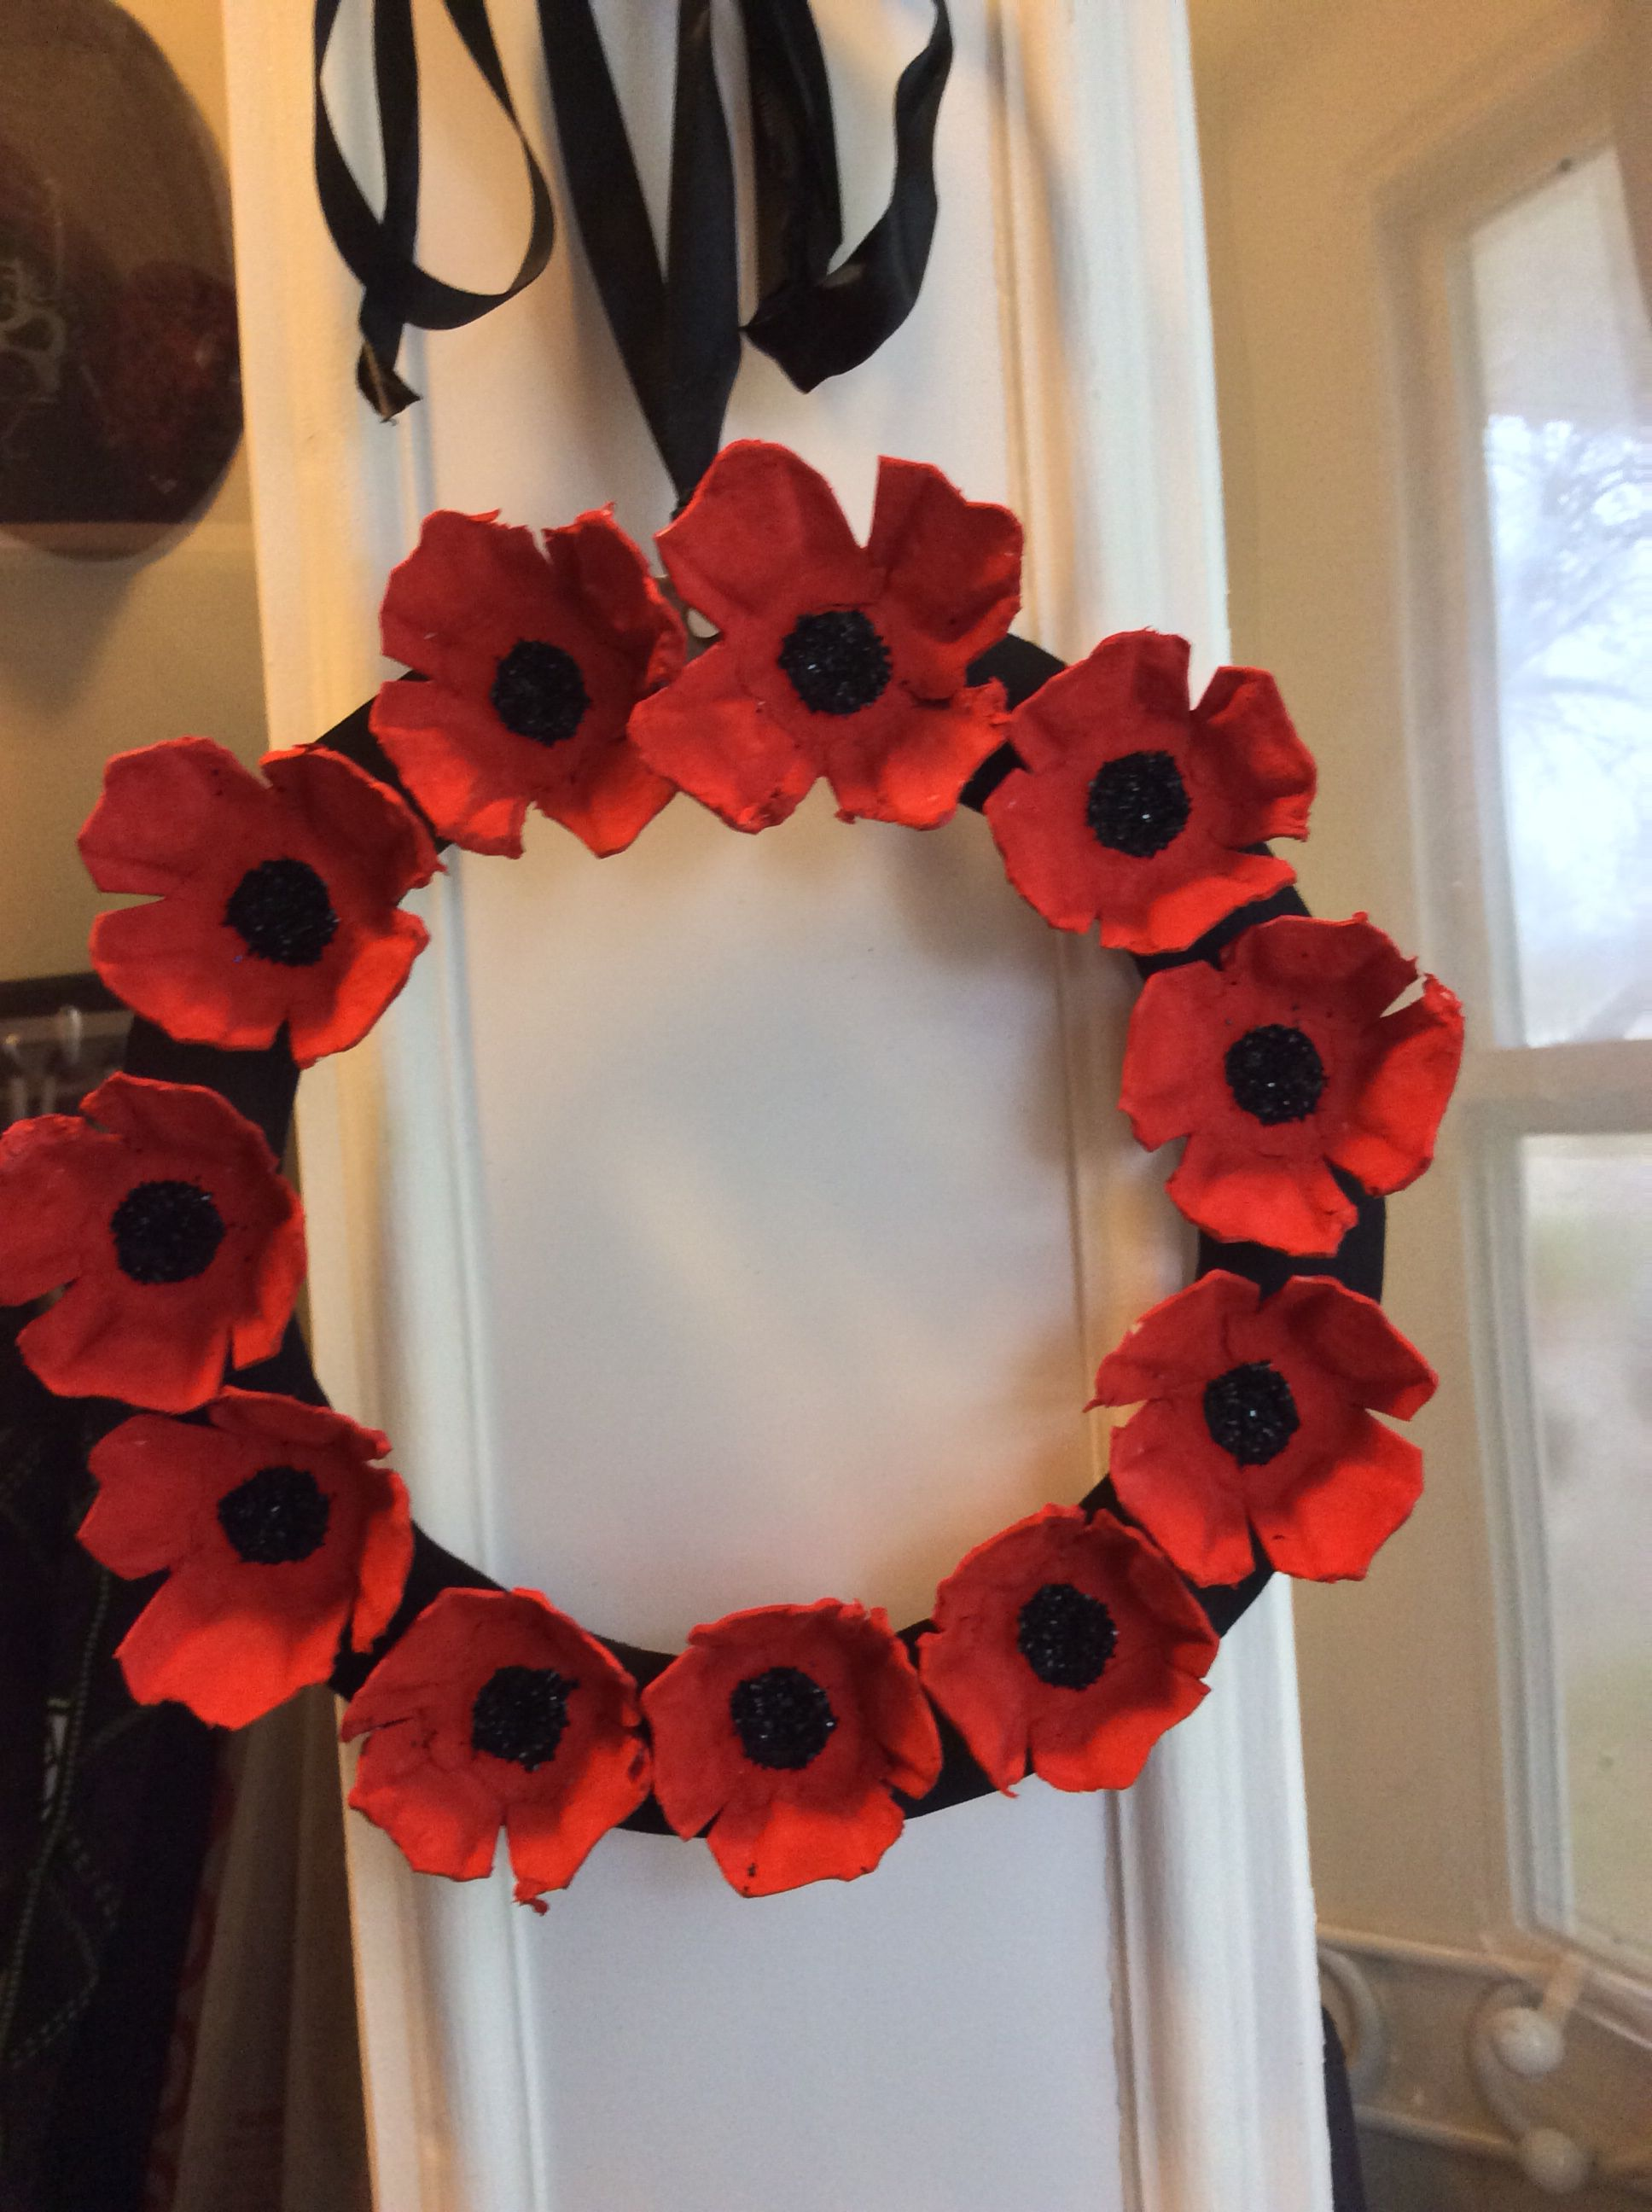 Egg carton poppy wreath., also see under wreaths